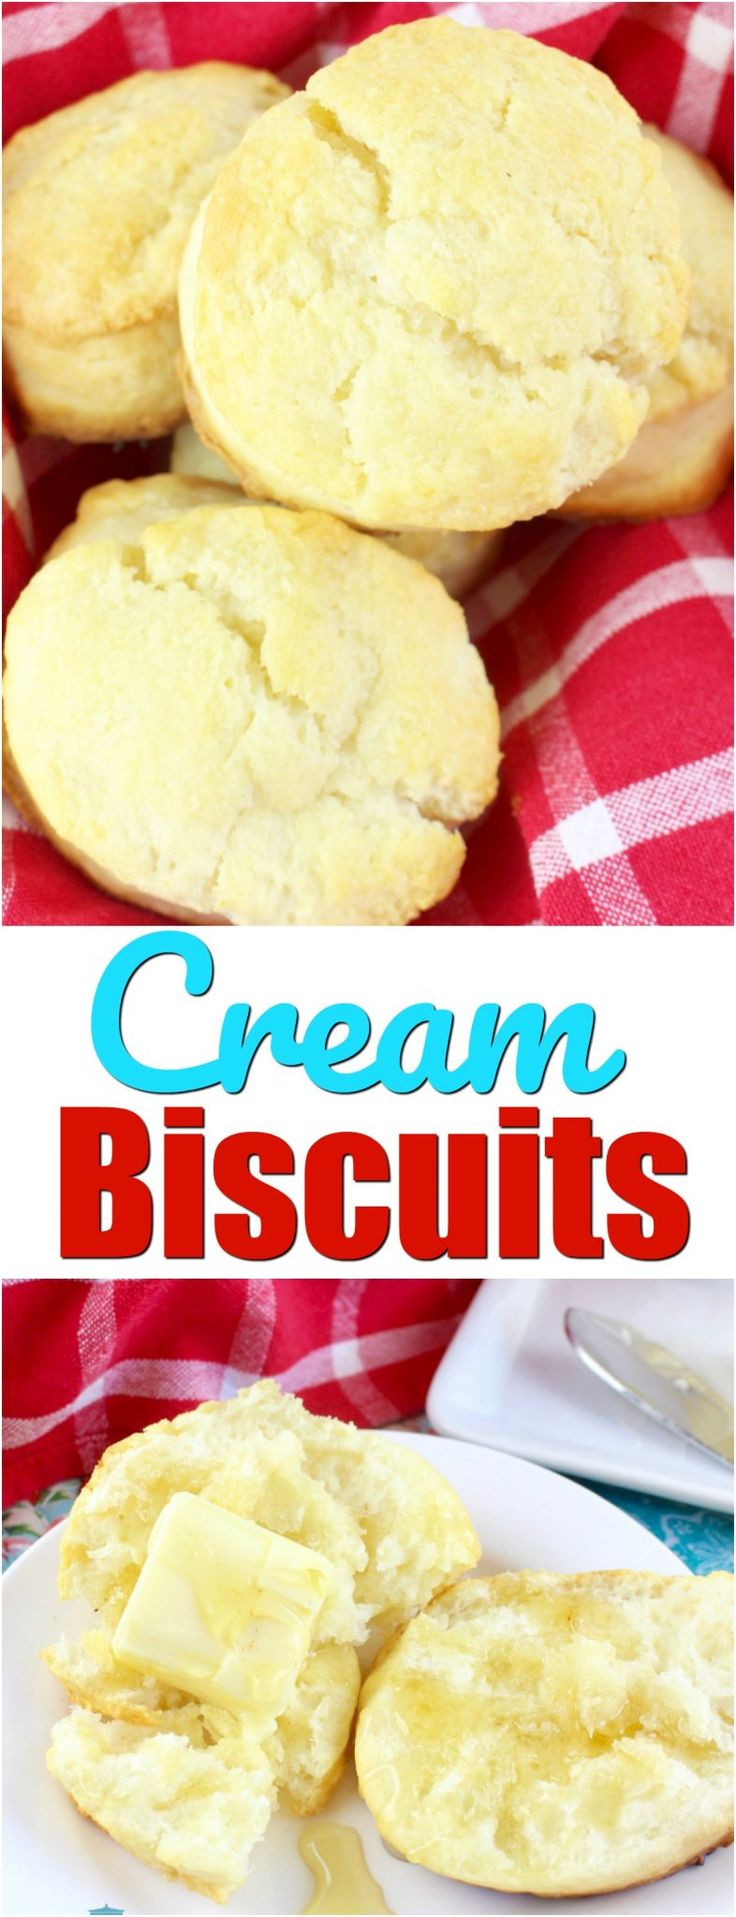 2-Ingredient Cream Biscuits recipe from The Country Cook